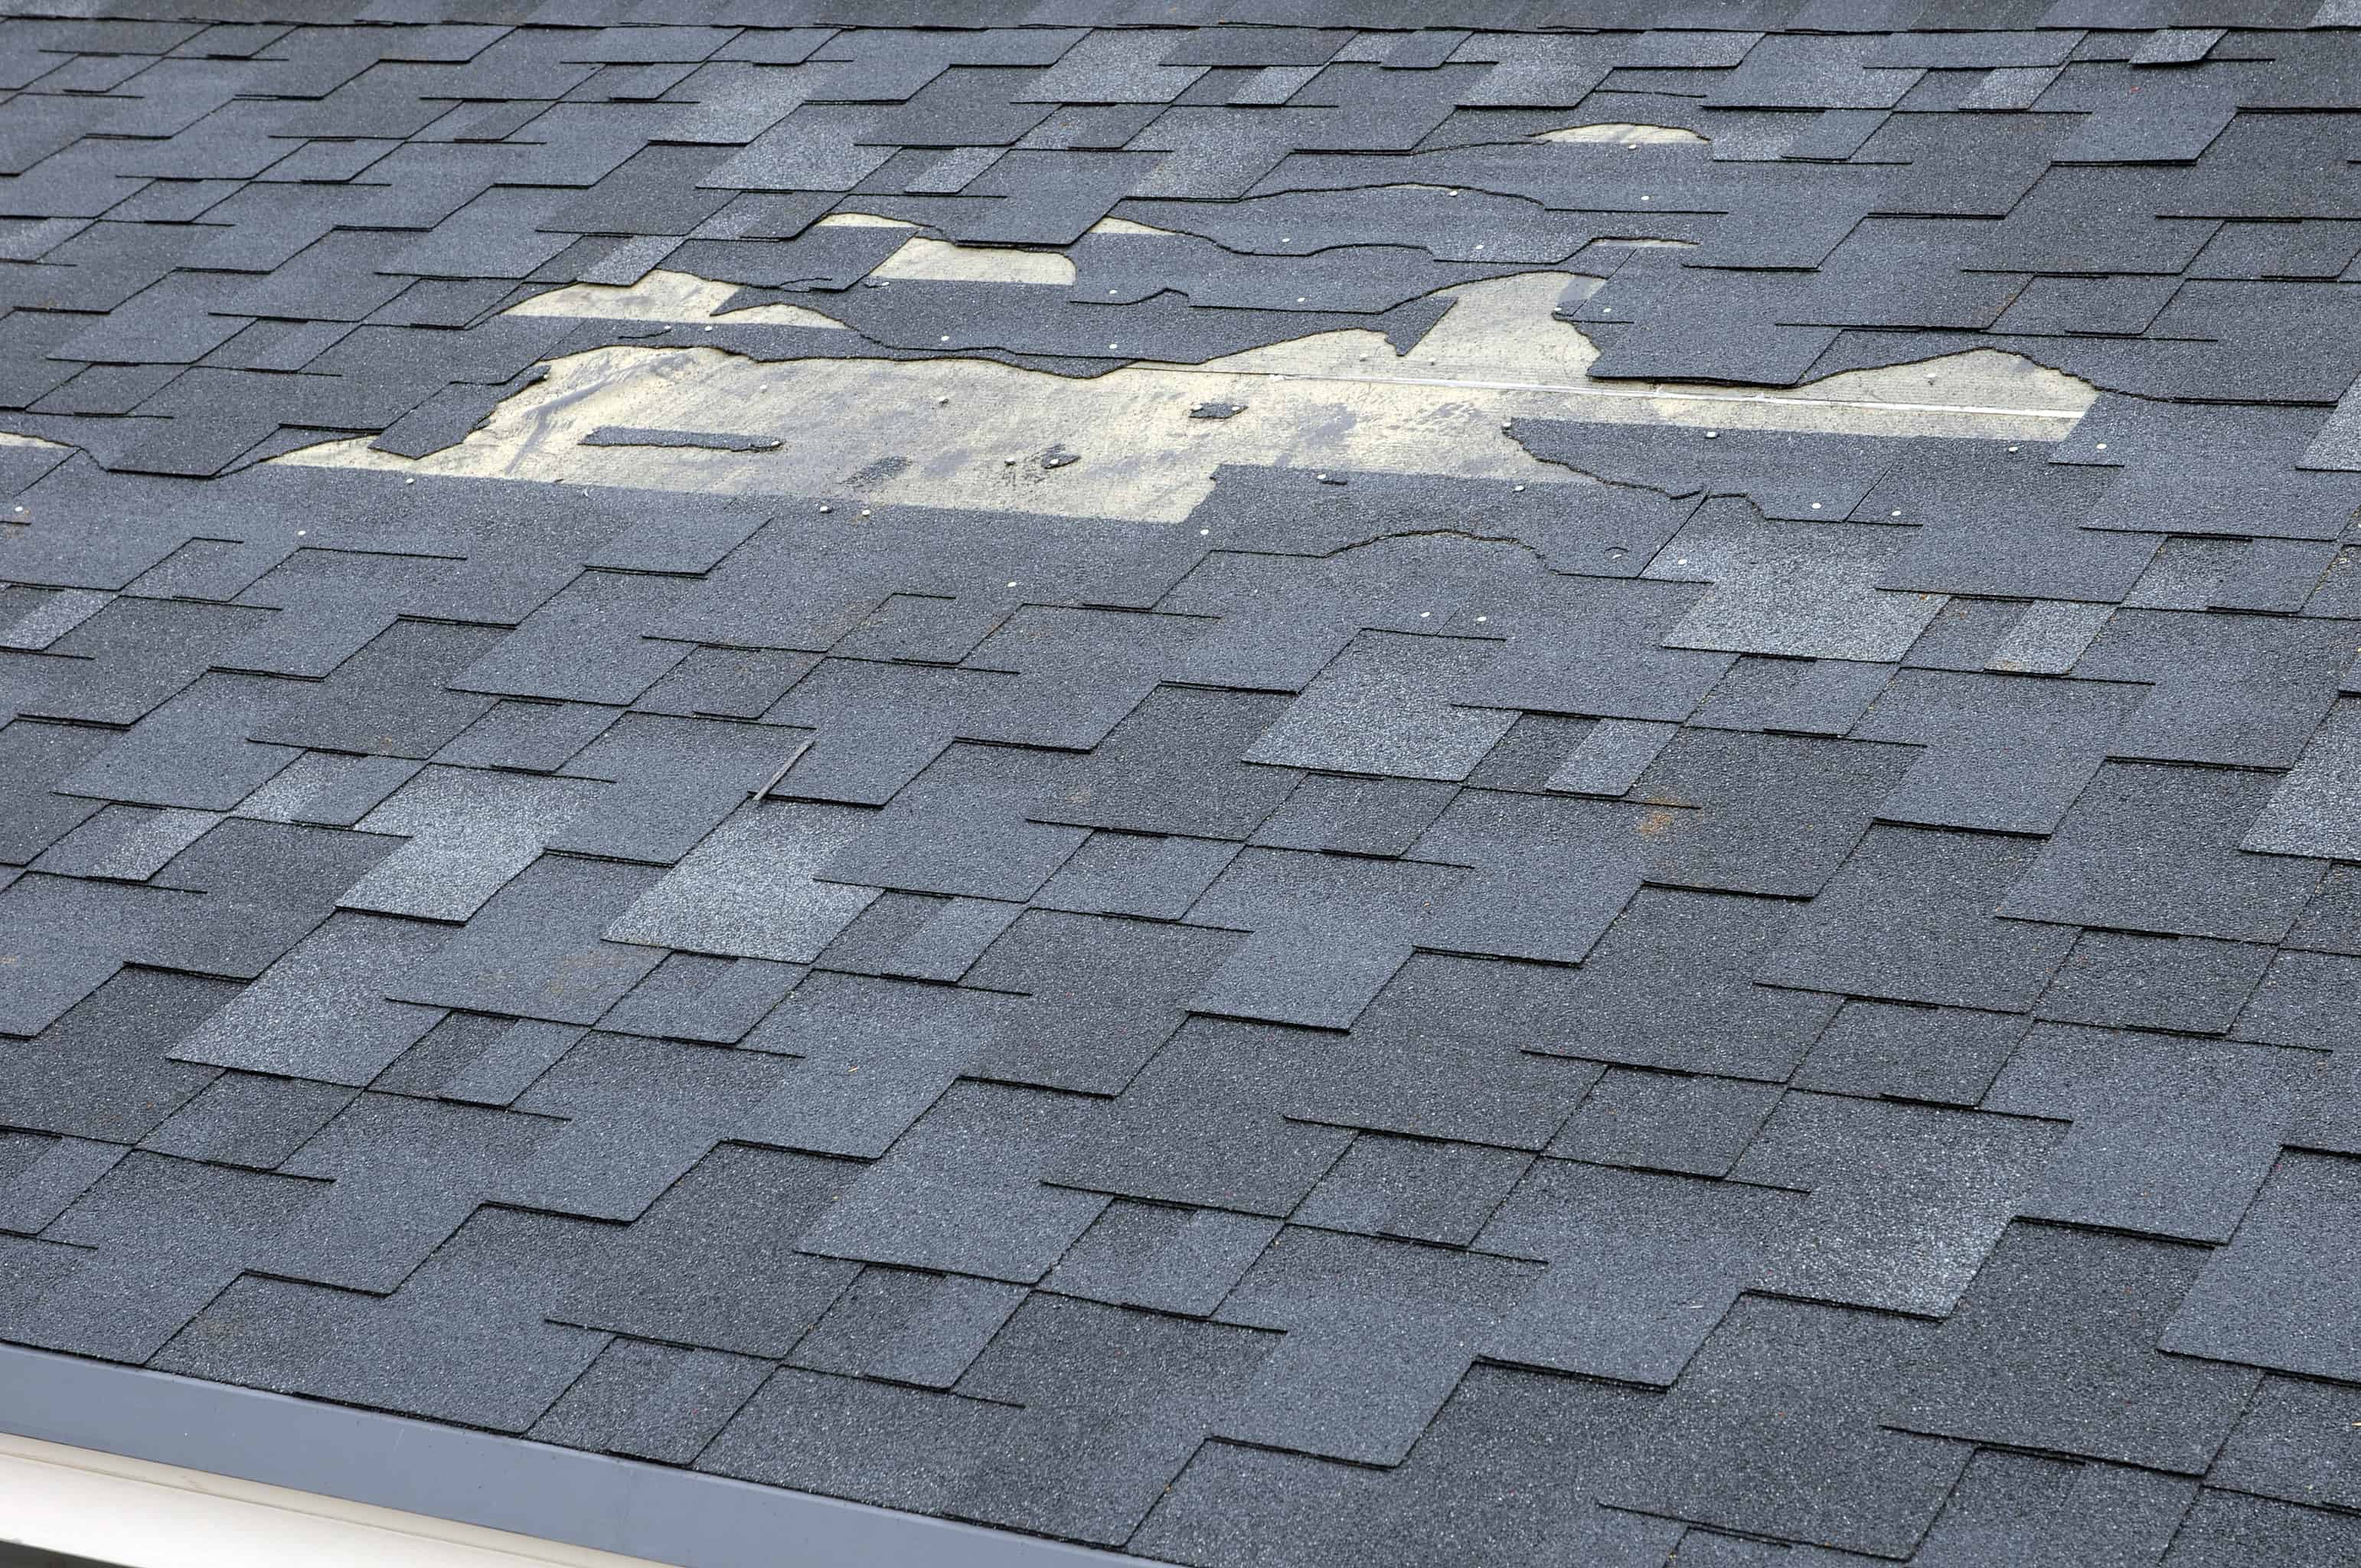 Contact Armour Contracting for all of your roof inspection needs